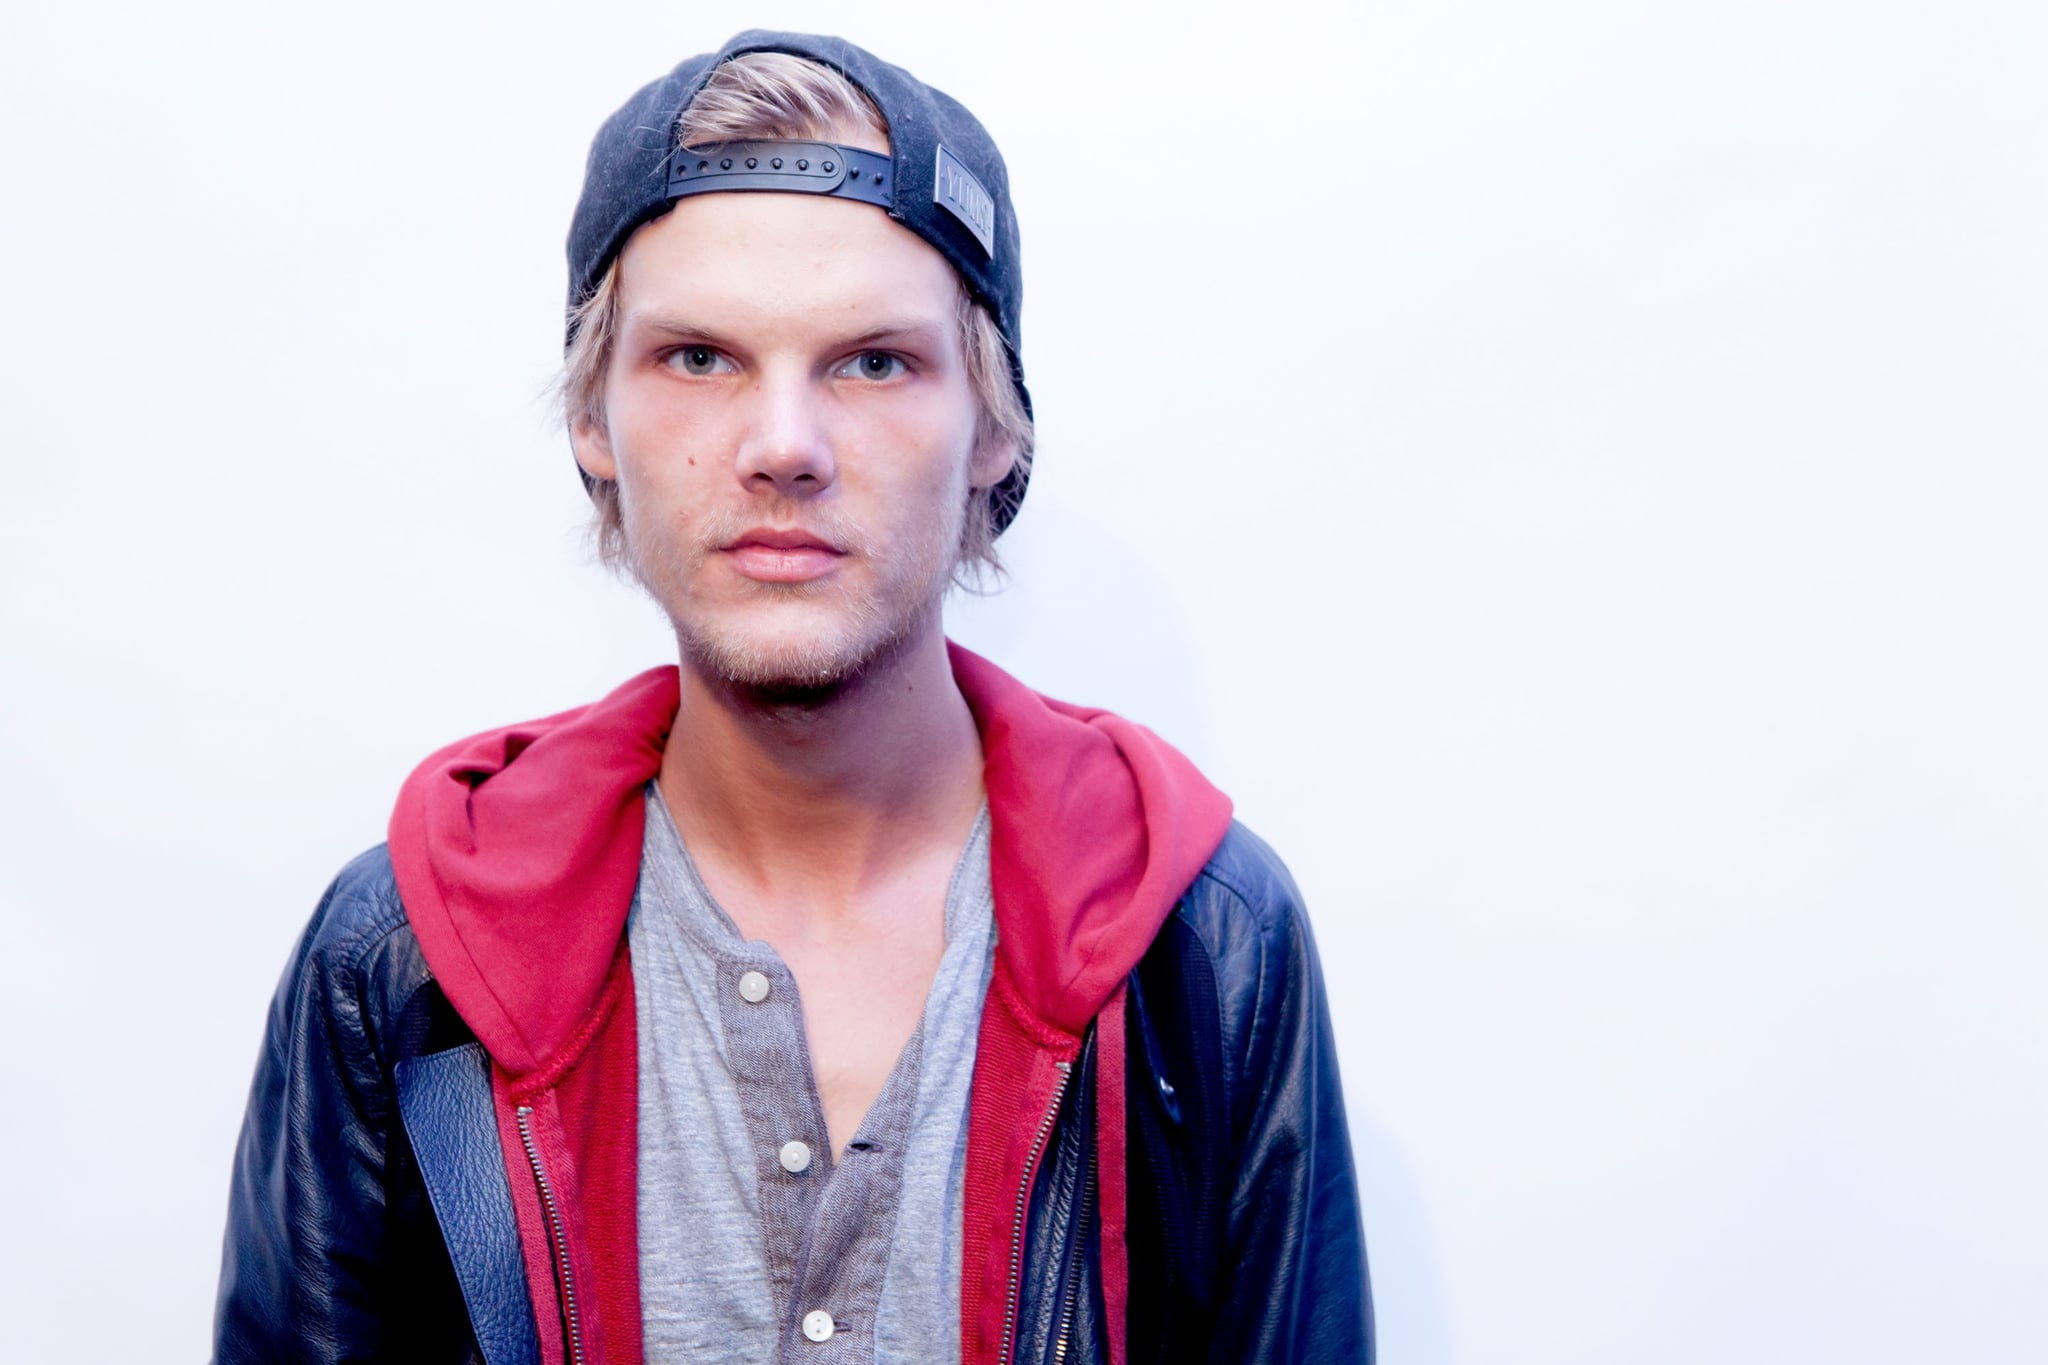 IRVINE, CA - MAY 31:  Tim Bergling aka Avicii attends the 22nd Annual KROQ Weenie Roast on May 31, 2014 in Irvine, California.  (Photo by Gabriel Olsen/Getty Images for CBS Radio Inc.)